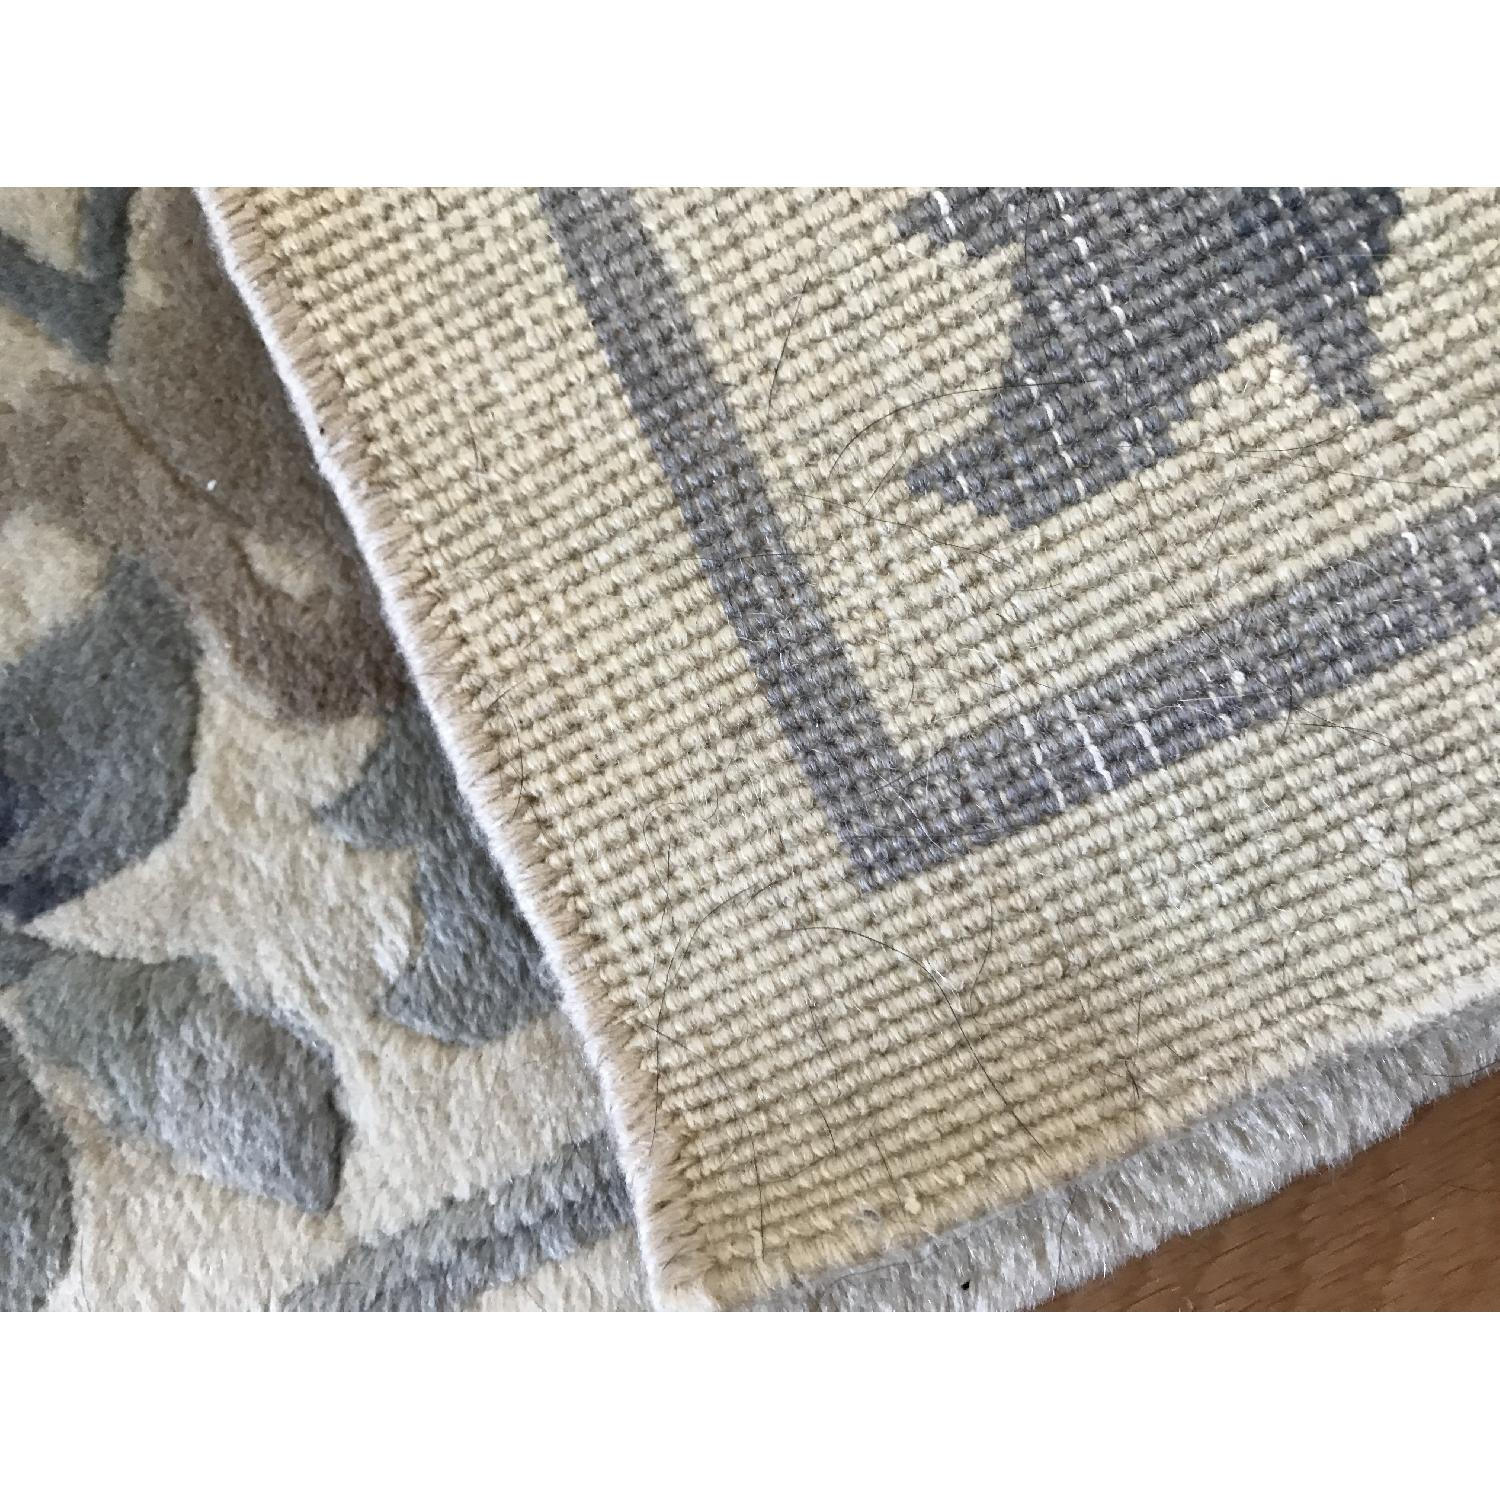 Oriental Hand Knotted Wool Area Rug - image-6